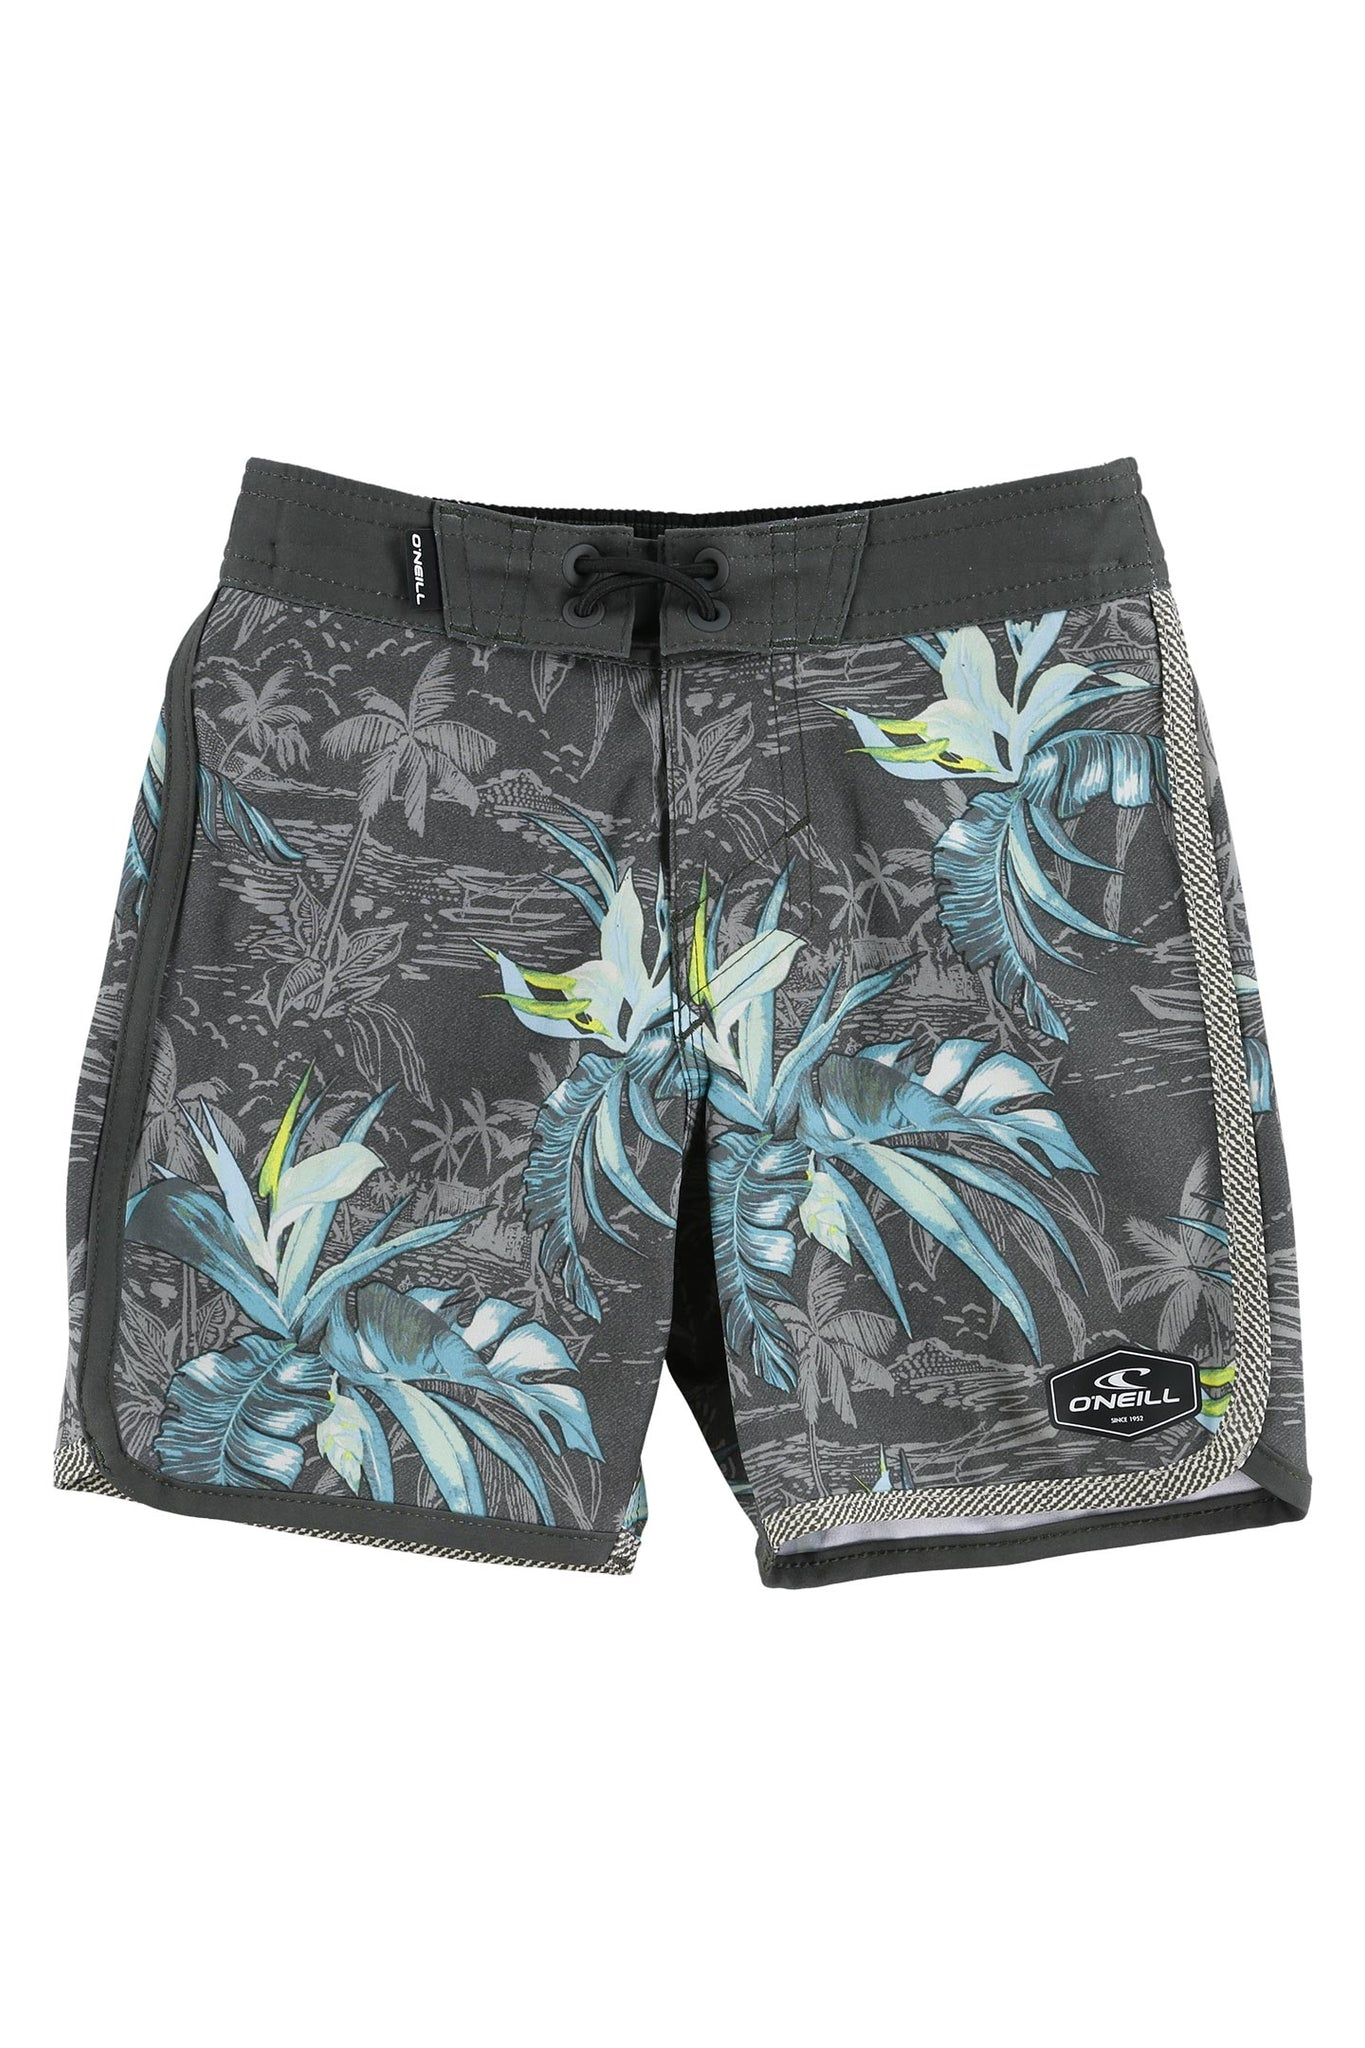 Little Boys Hyperfreak Boardshorts | O'Neill Clothing USA